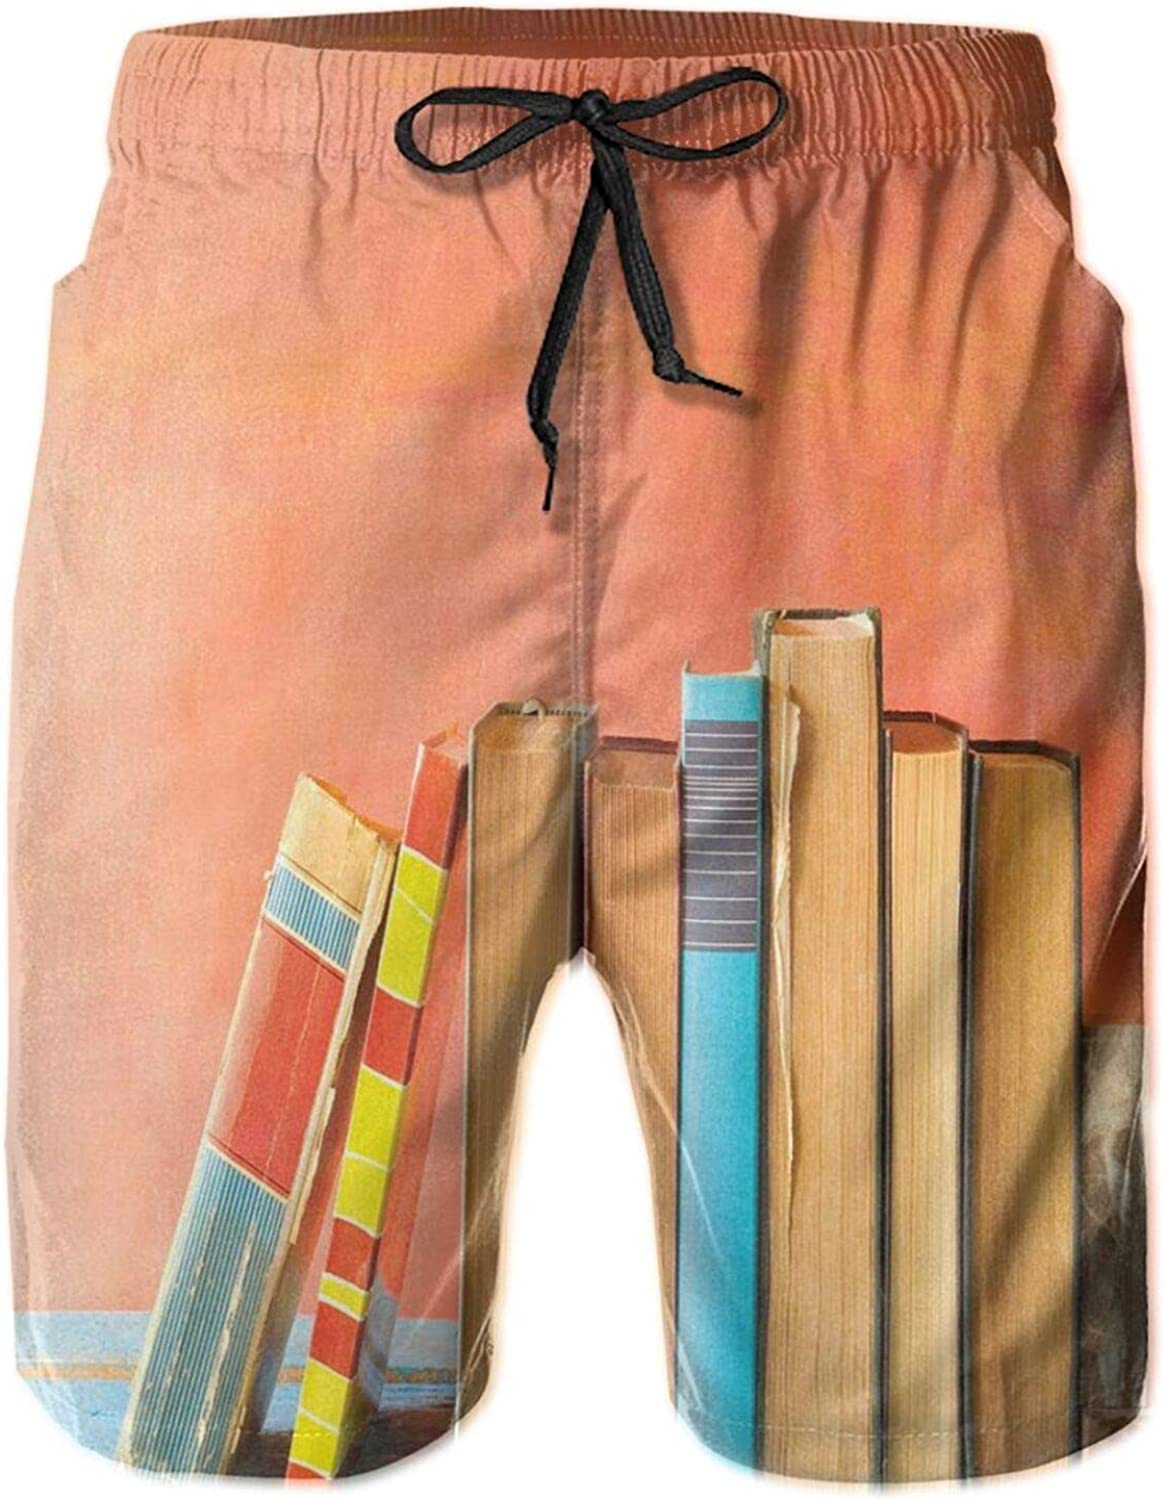 Grunge Painted Backdrop Photo with Row of Old Vintage Books On Wooden Shelf Print Mens Swim Shorts Casual Workout Short Pants Drawstring Beach Shorts,XXL